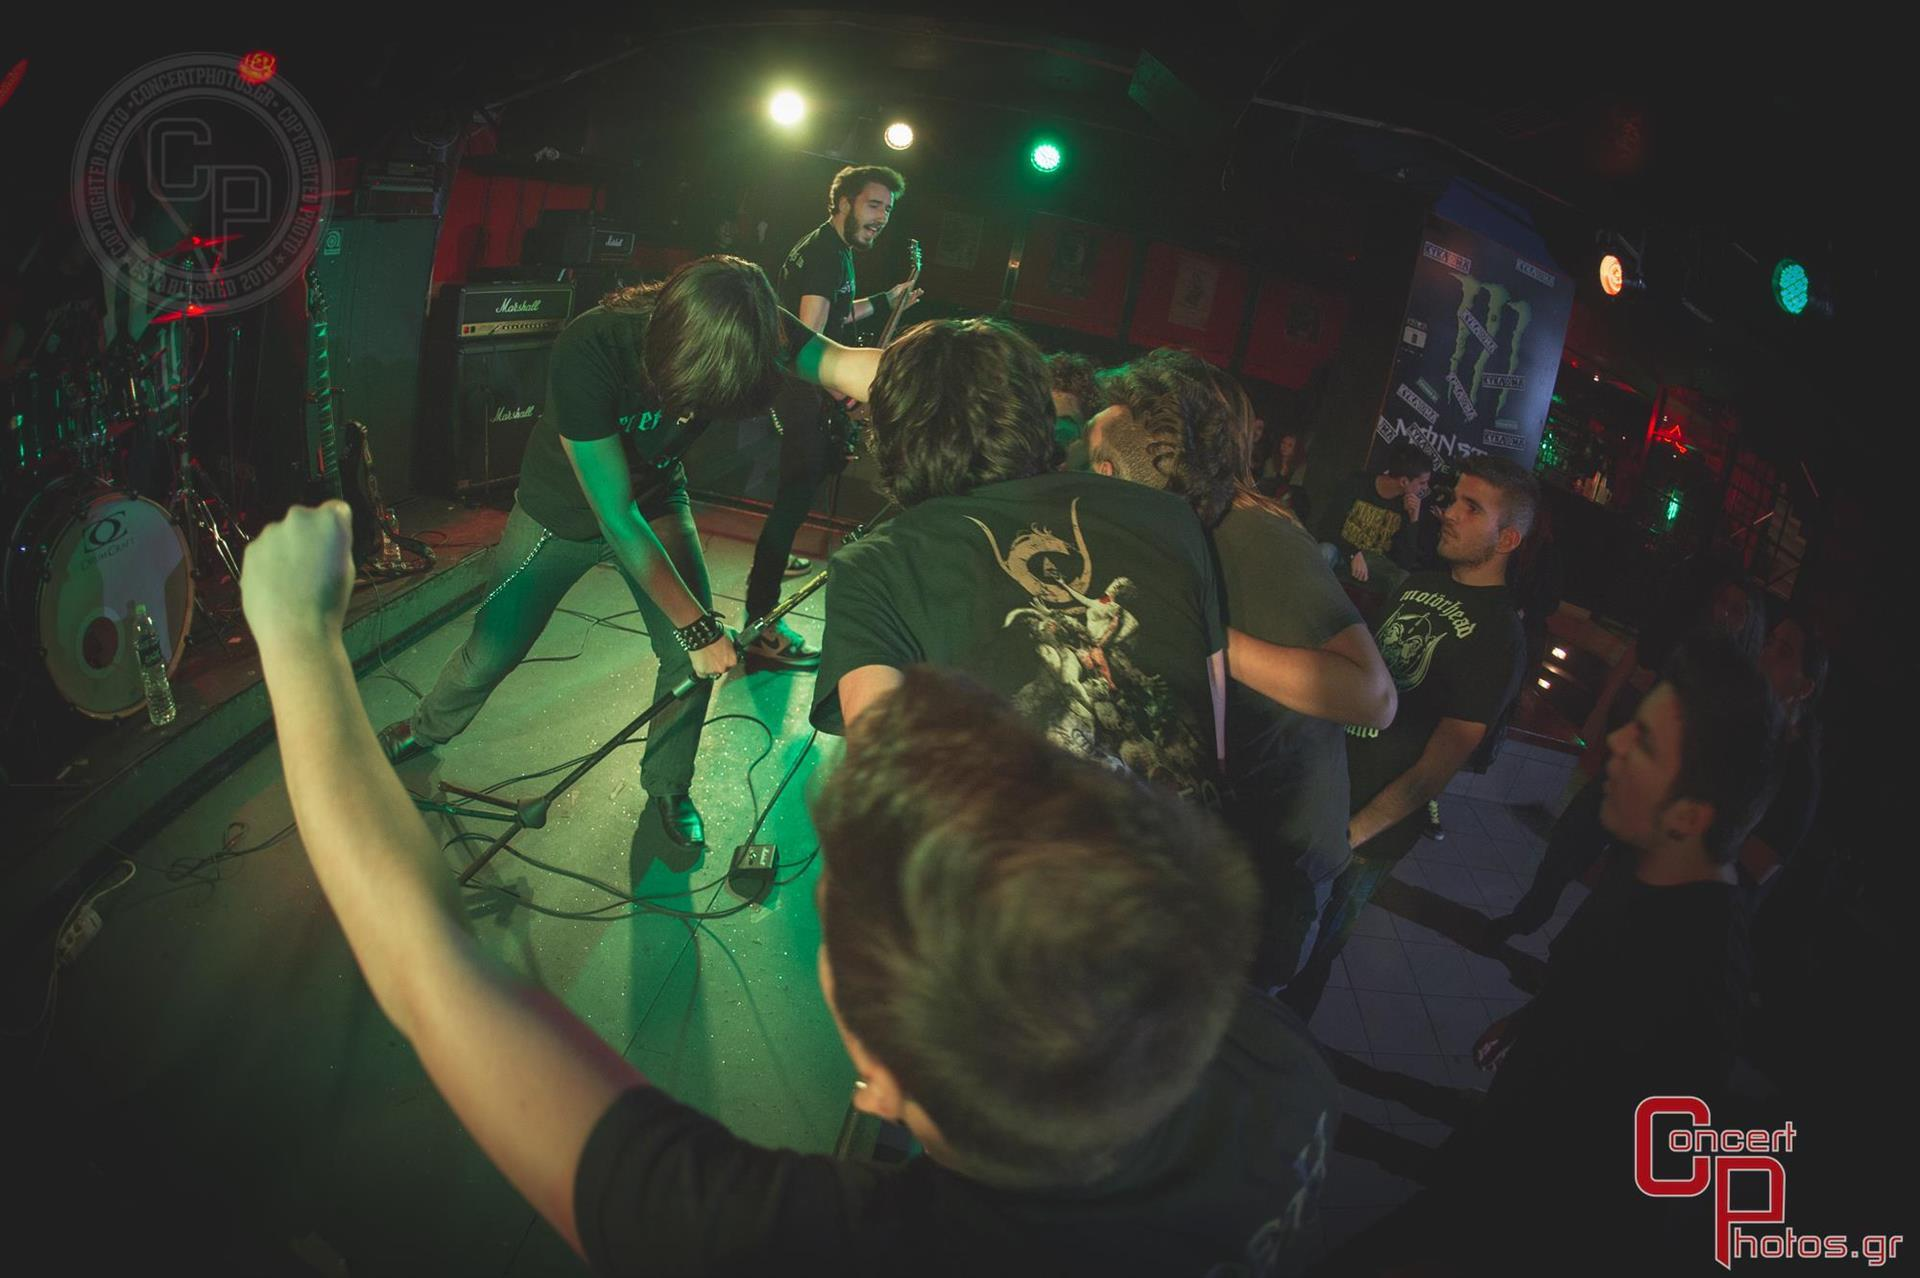 Battle Of The Bands Athens - Leg 3- photographer:  - ConcertPhotos - 20150104_2320_23